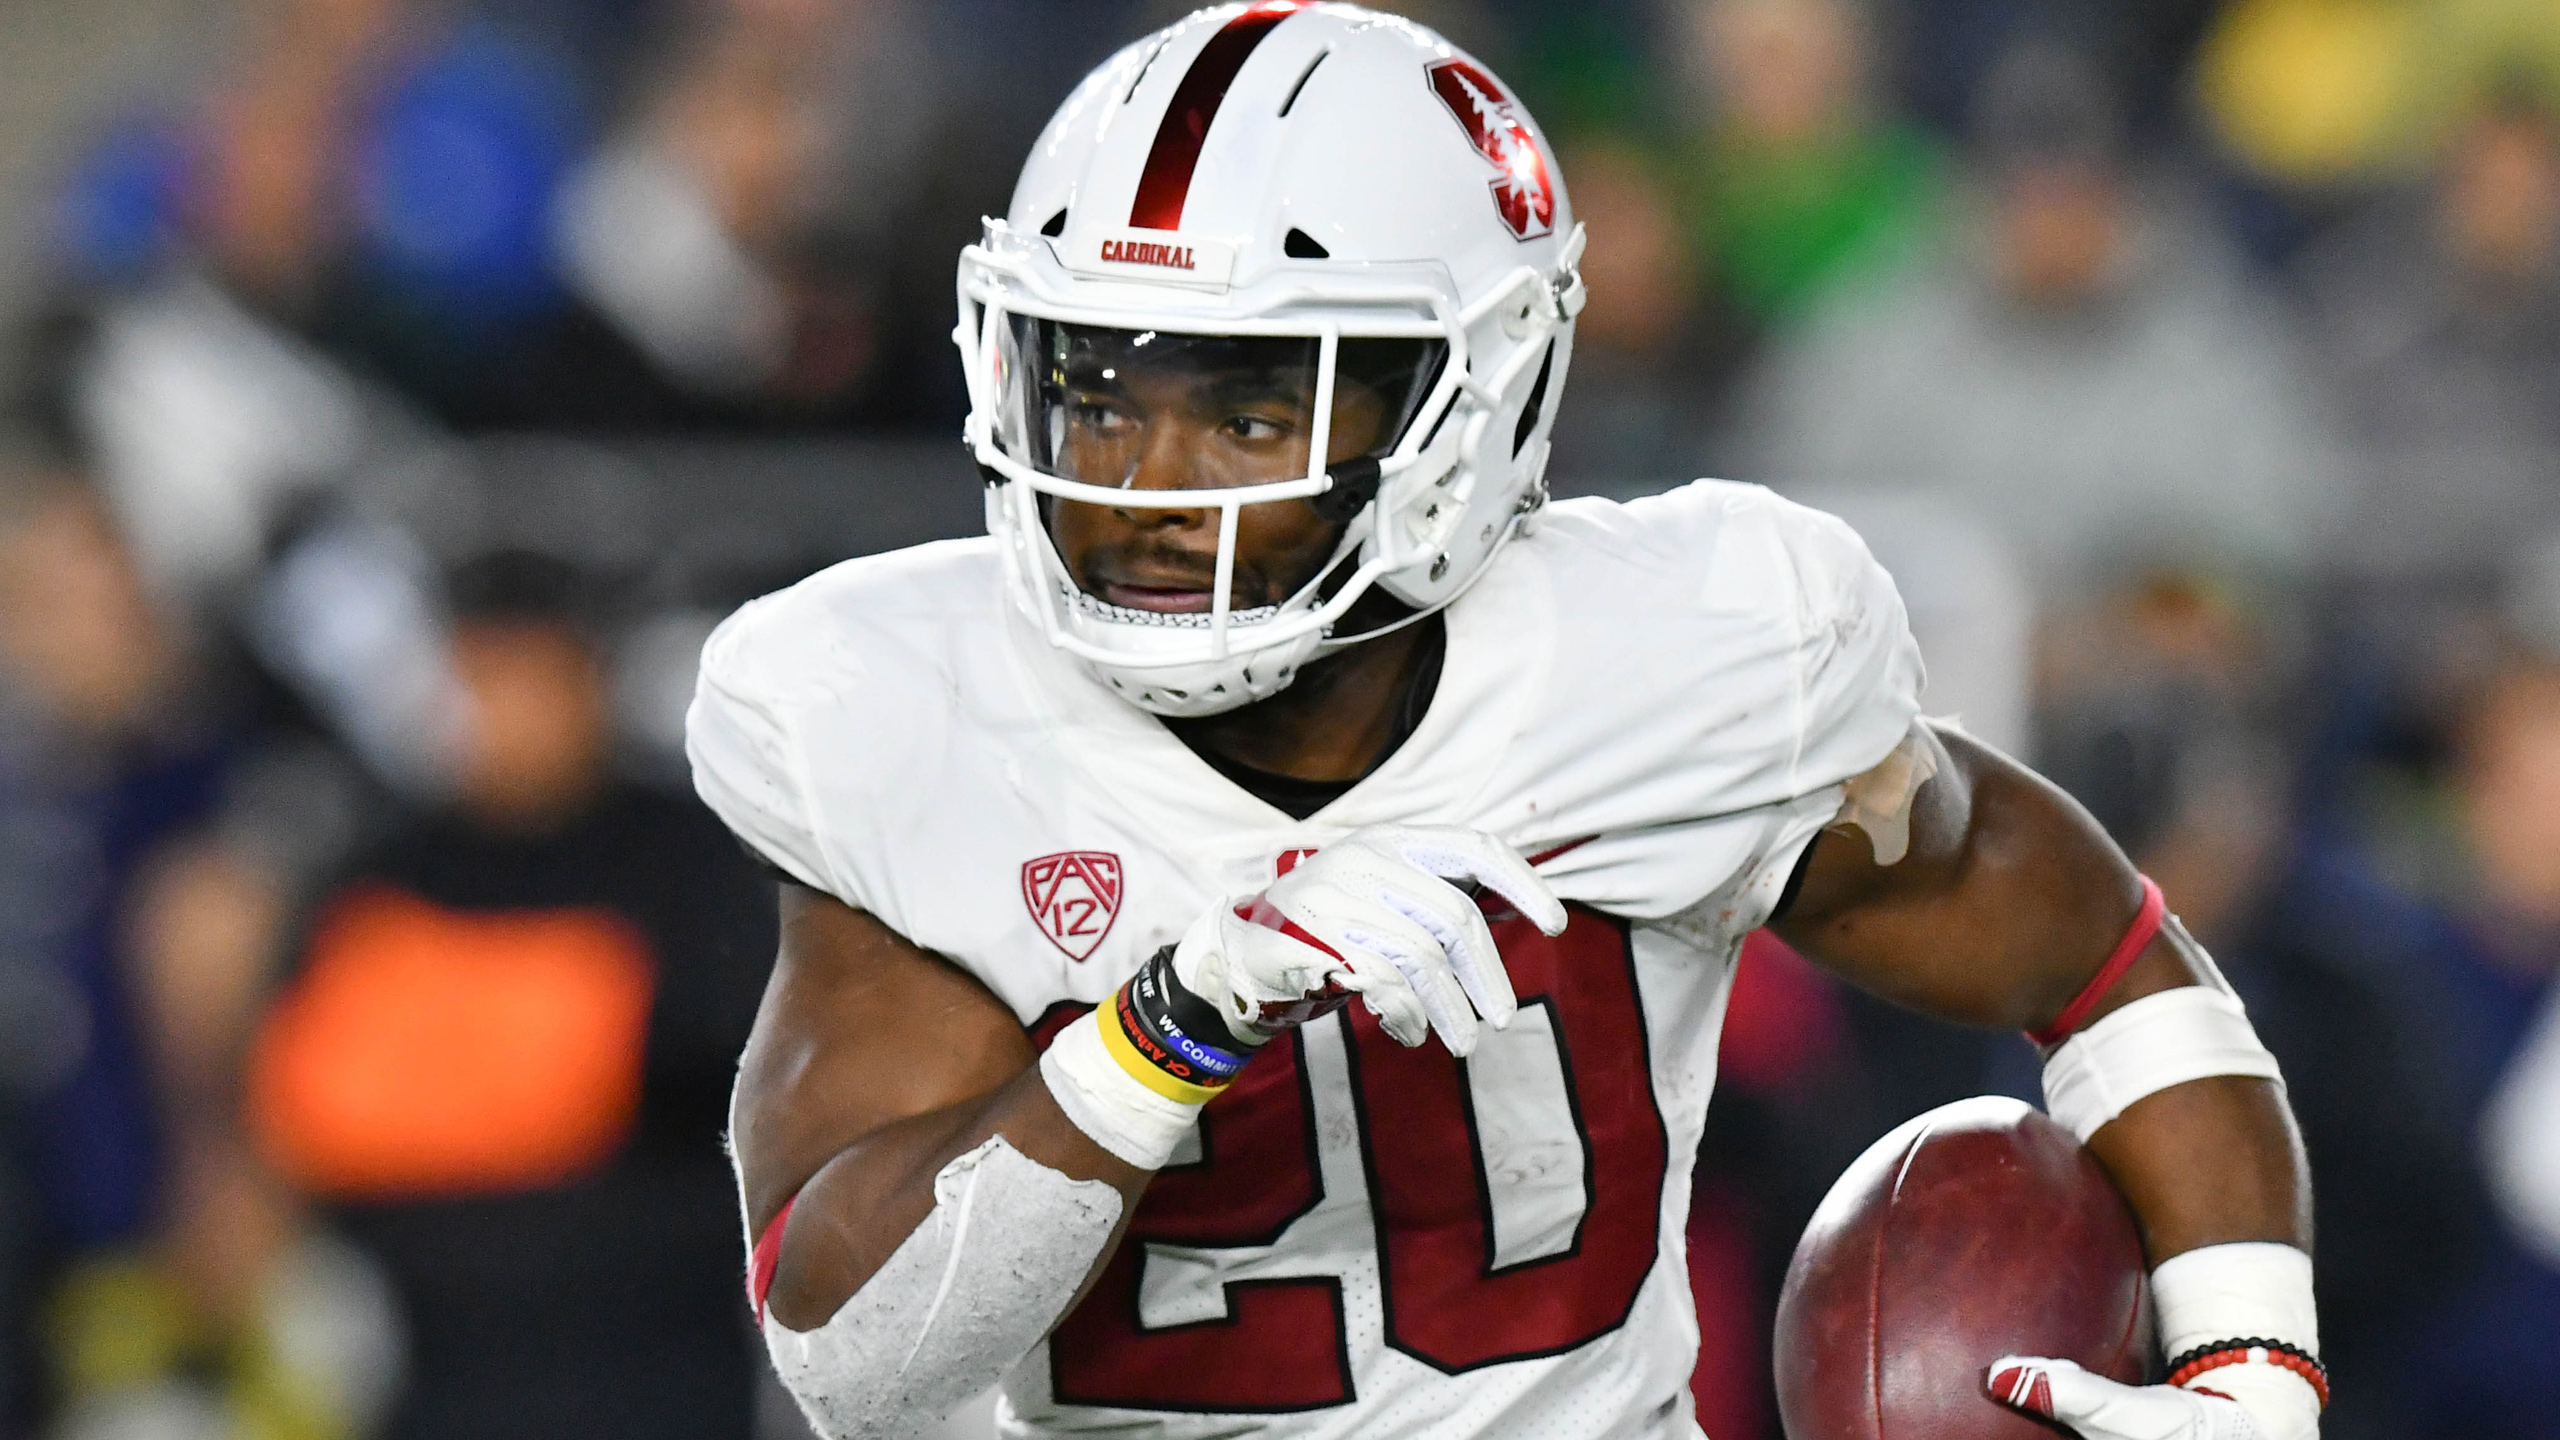 Stanford vs. Arizona State (Football)